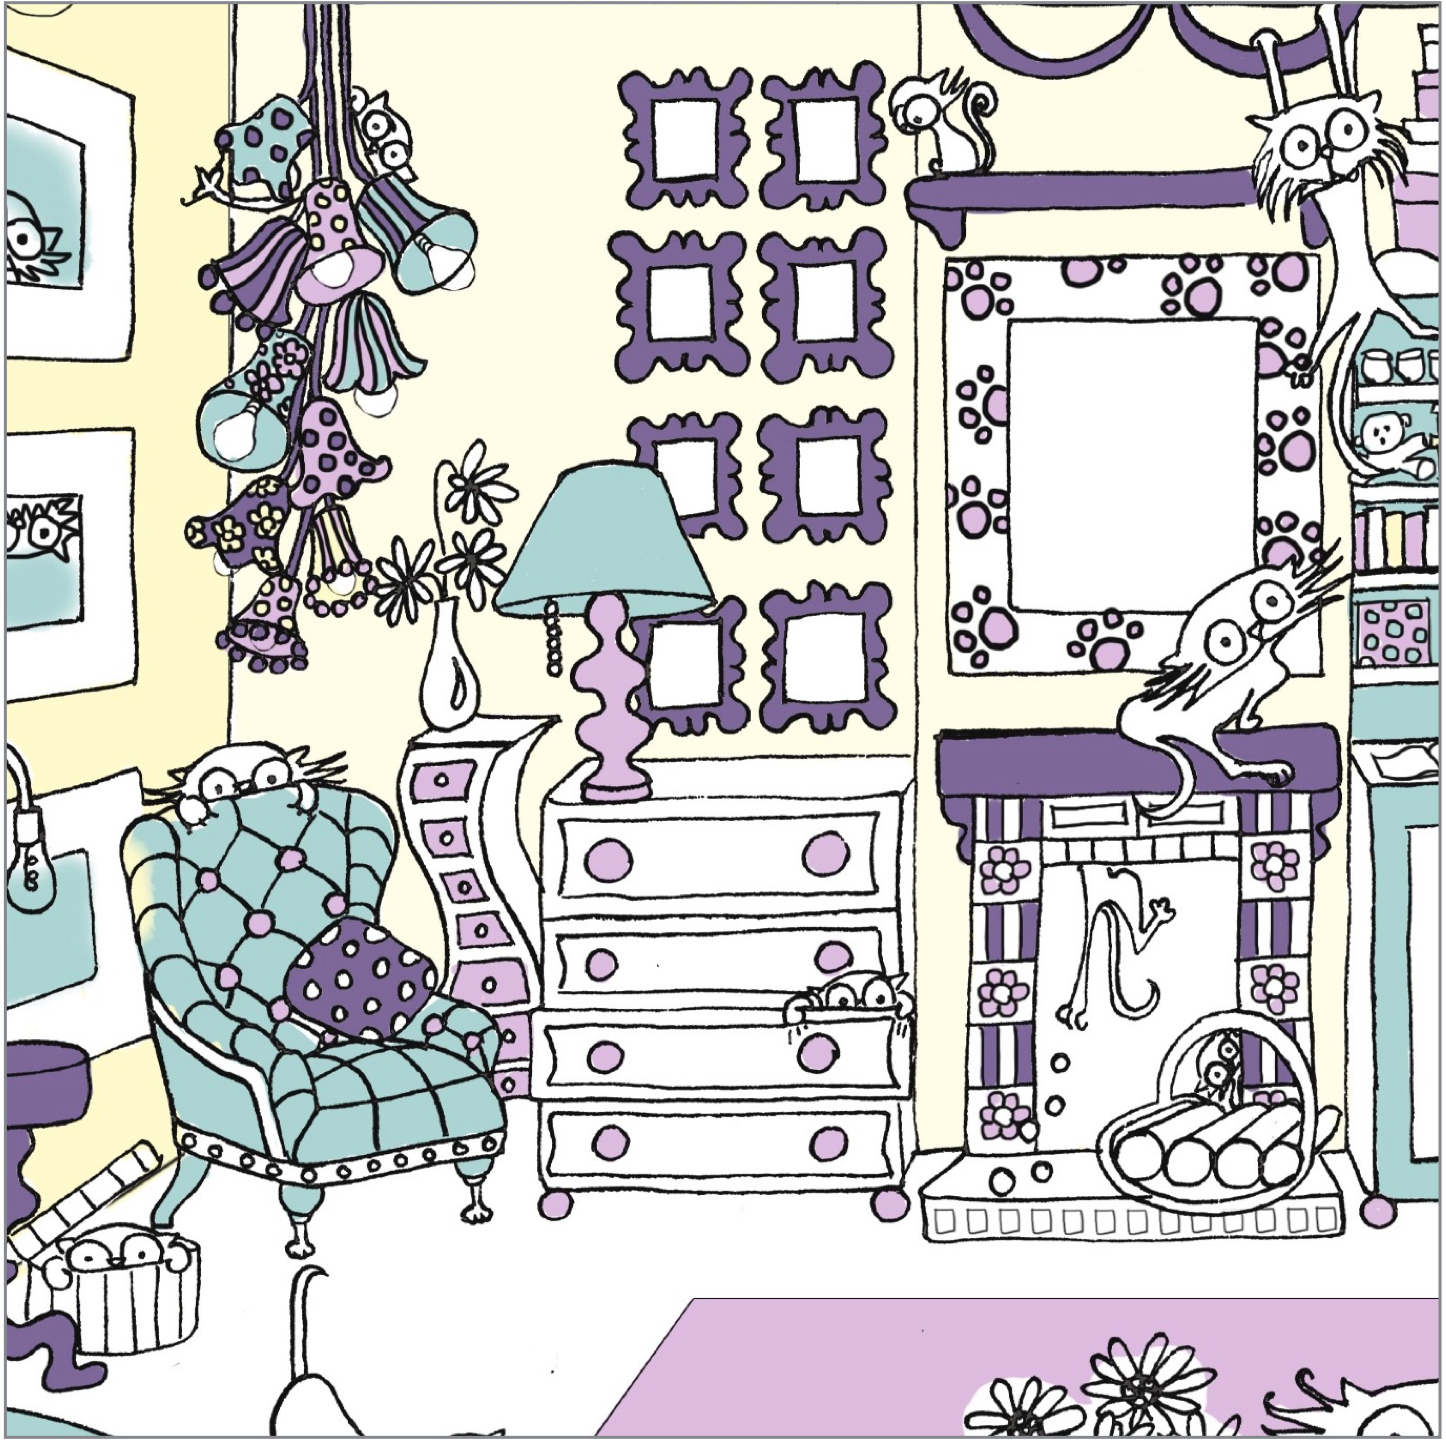 CAT DONT CARE | ADULT COLOURING BOOK BY NATALIE PALMER SUTTON 3.png